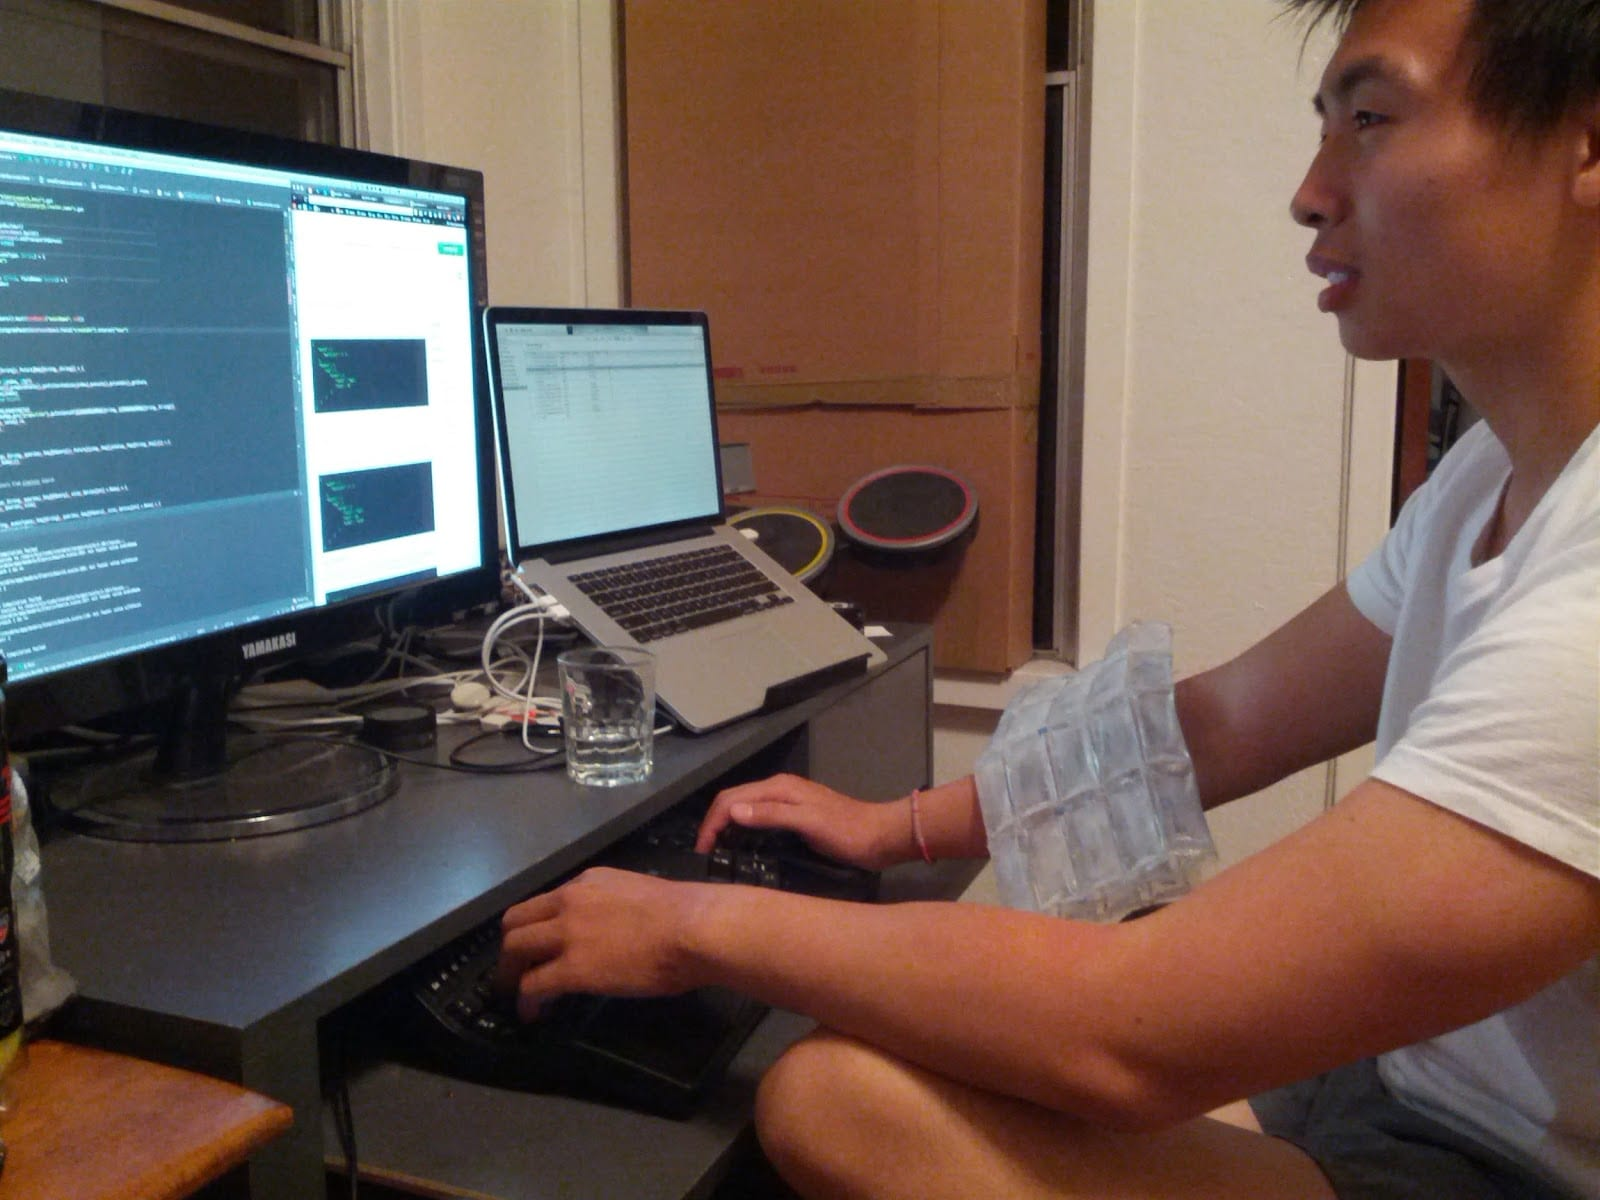 Iterable CEO Justin Zhu in the old office